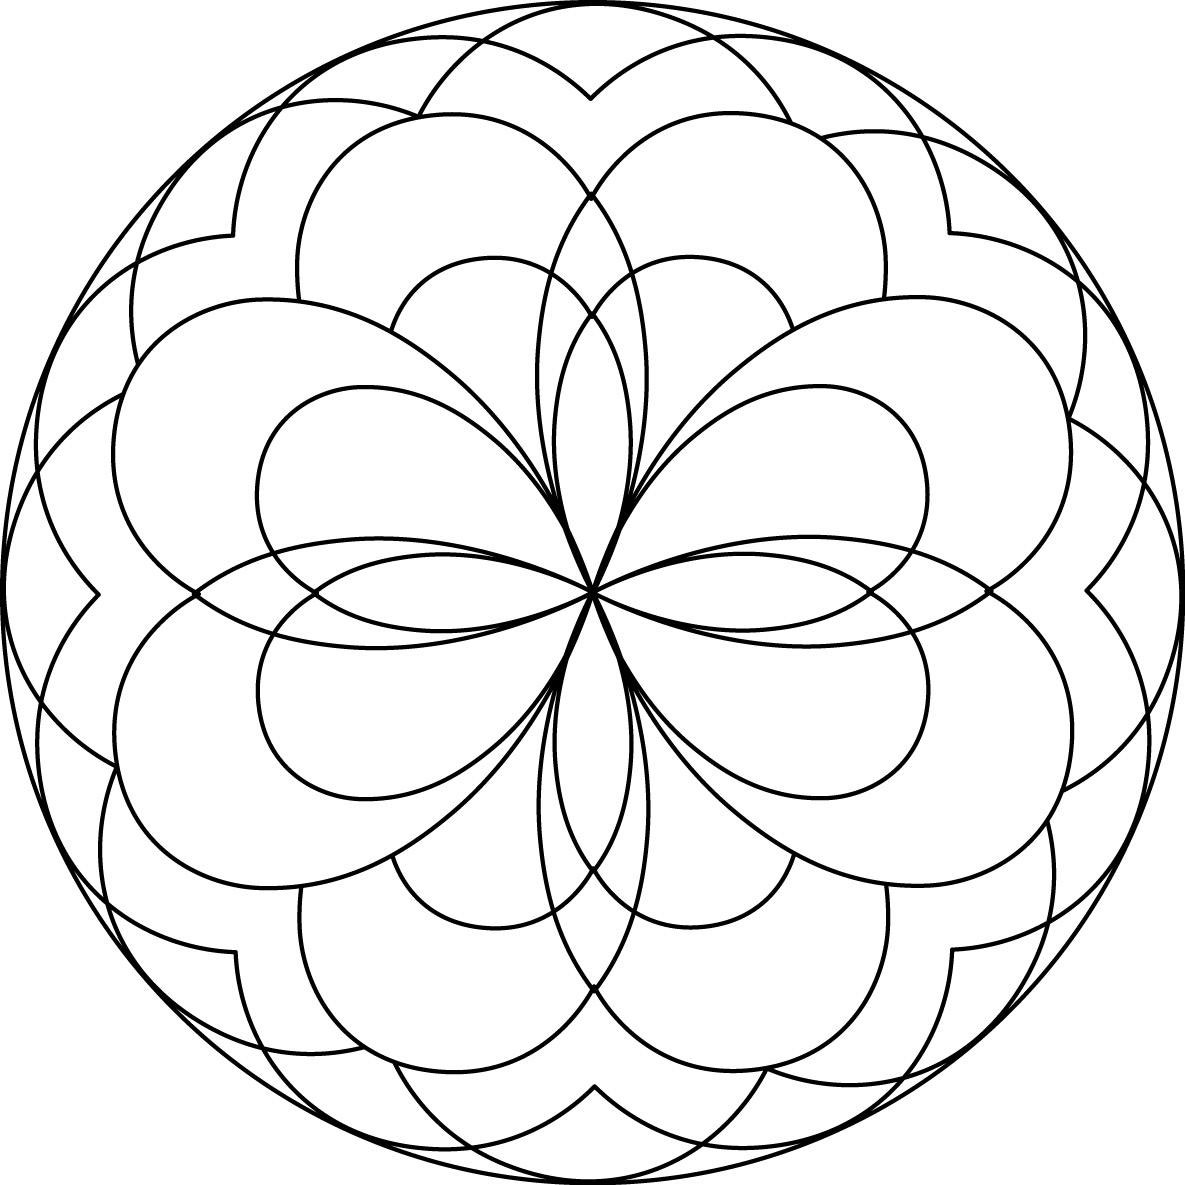 1185x1185 Simple Mandala Coloring Pages Download And Print For Free